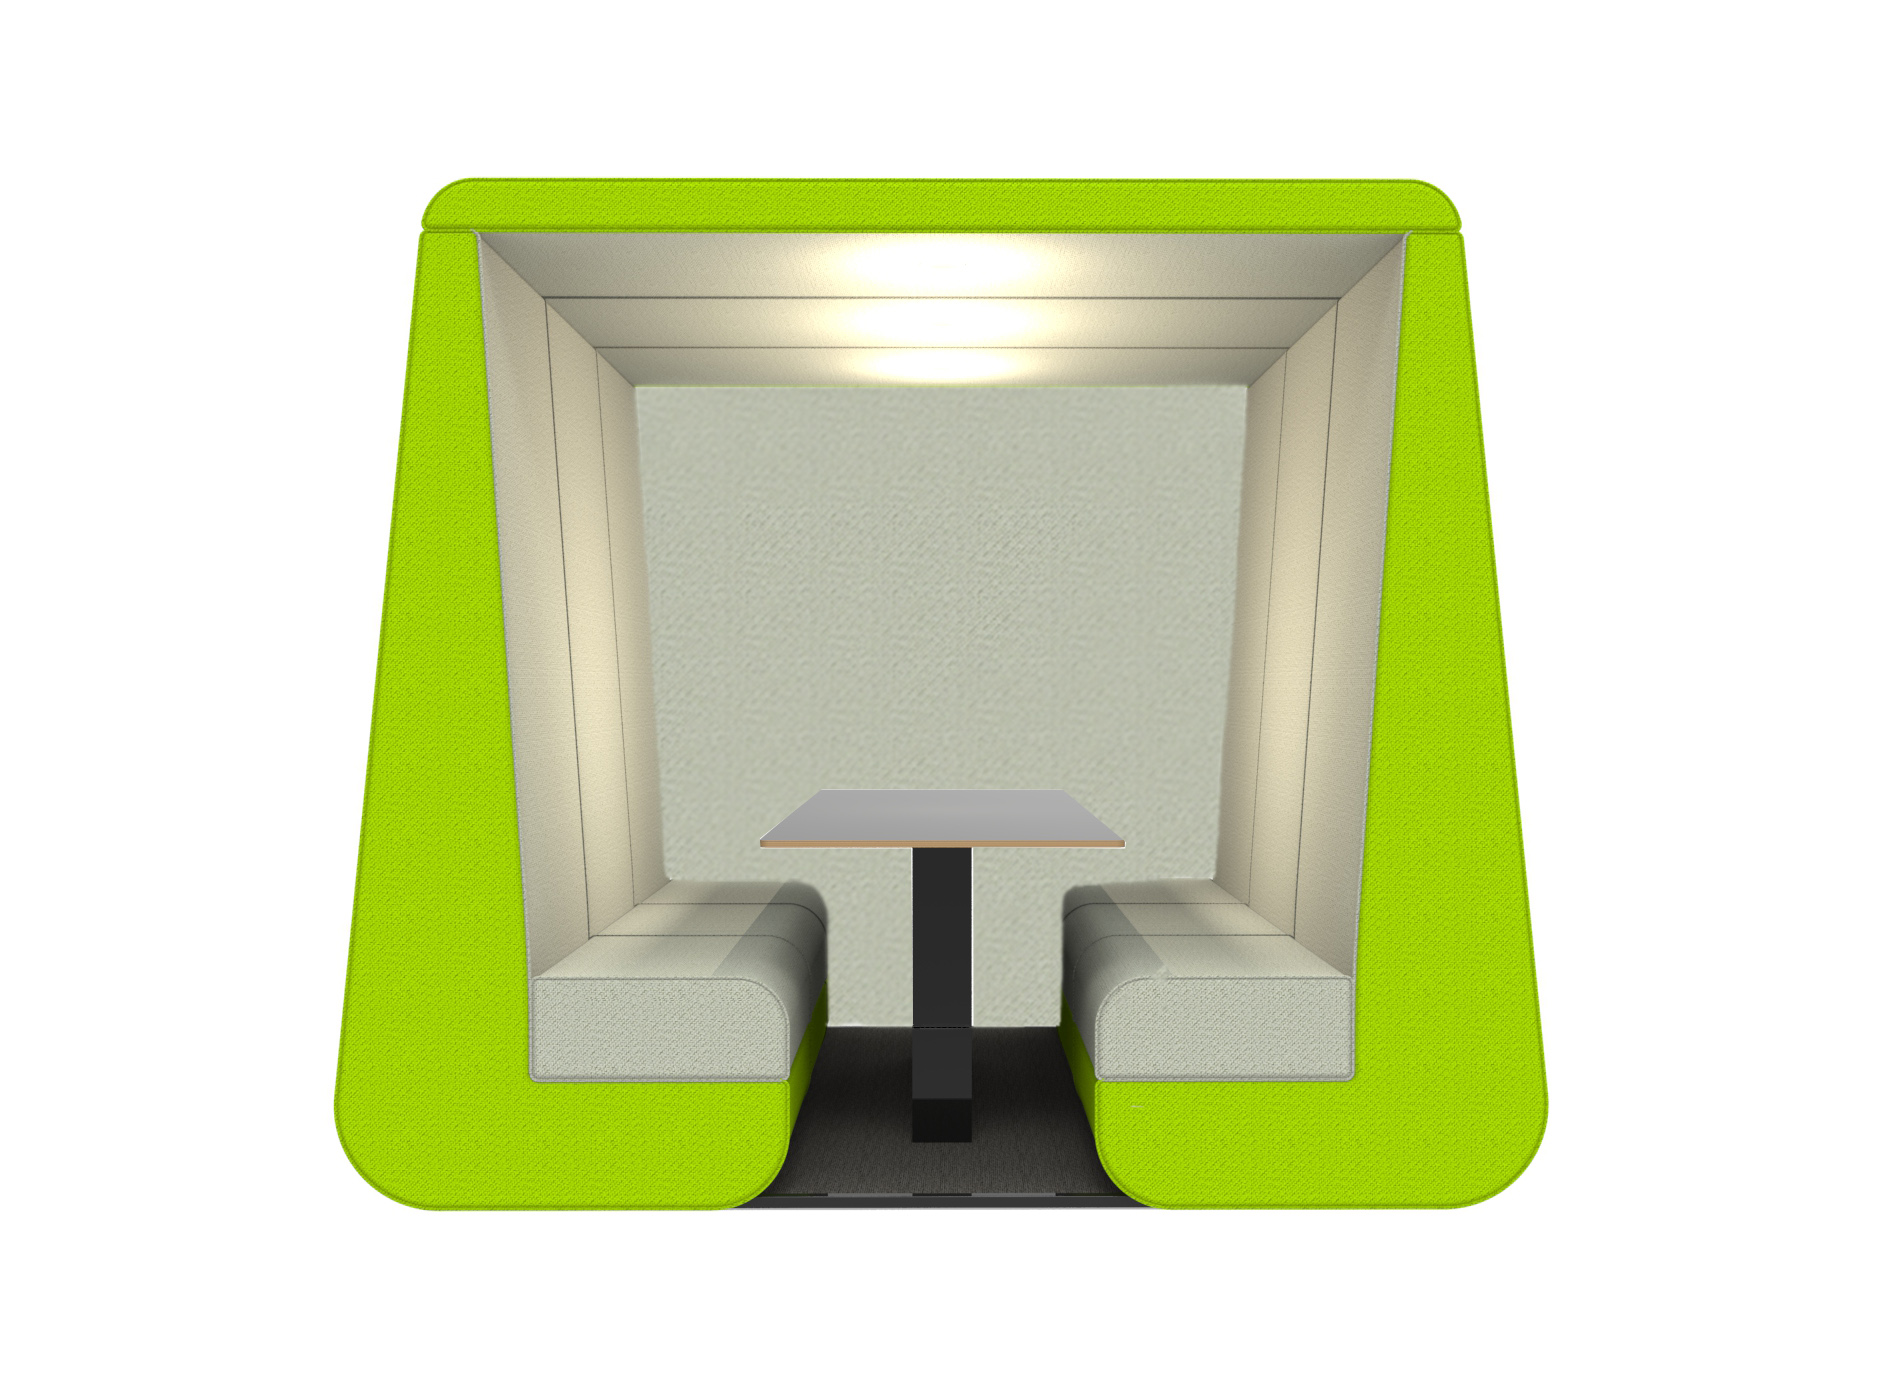 Bob 6 seat meeting pod with wall in green colour and overhead led lights